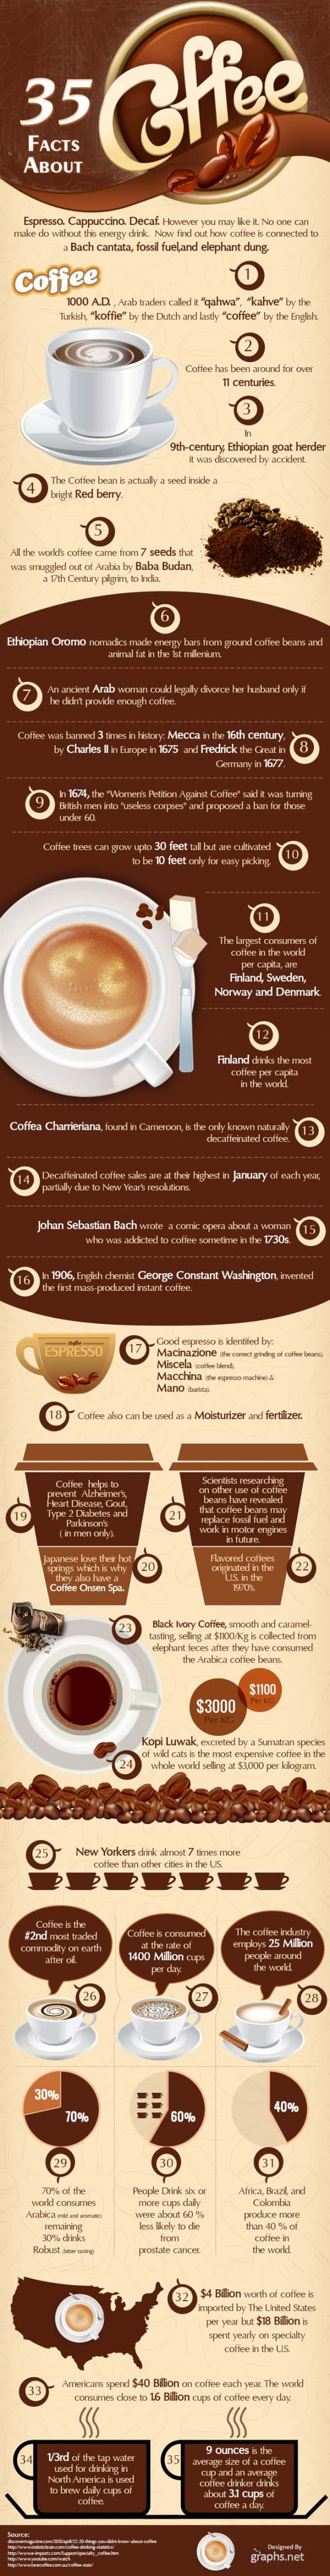 interesting-facts-about-coffee-640x4995